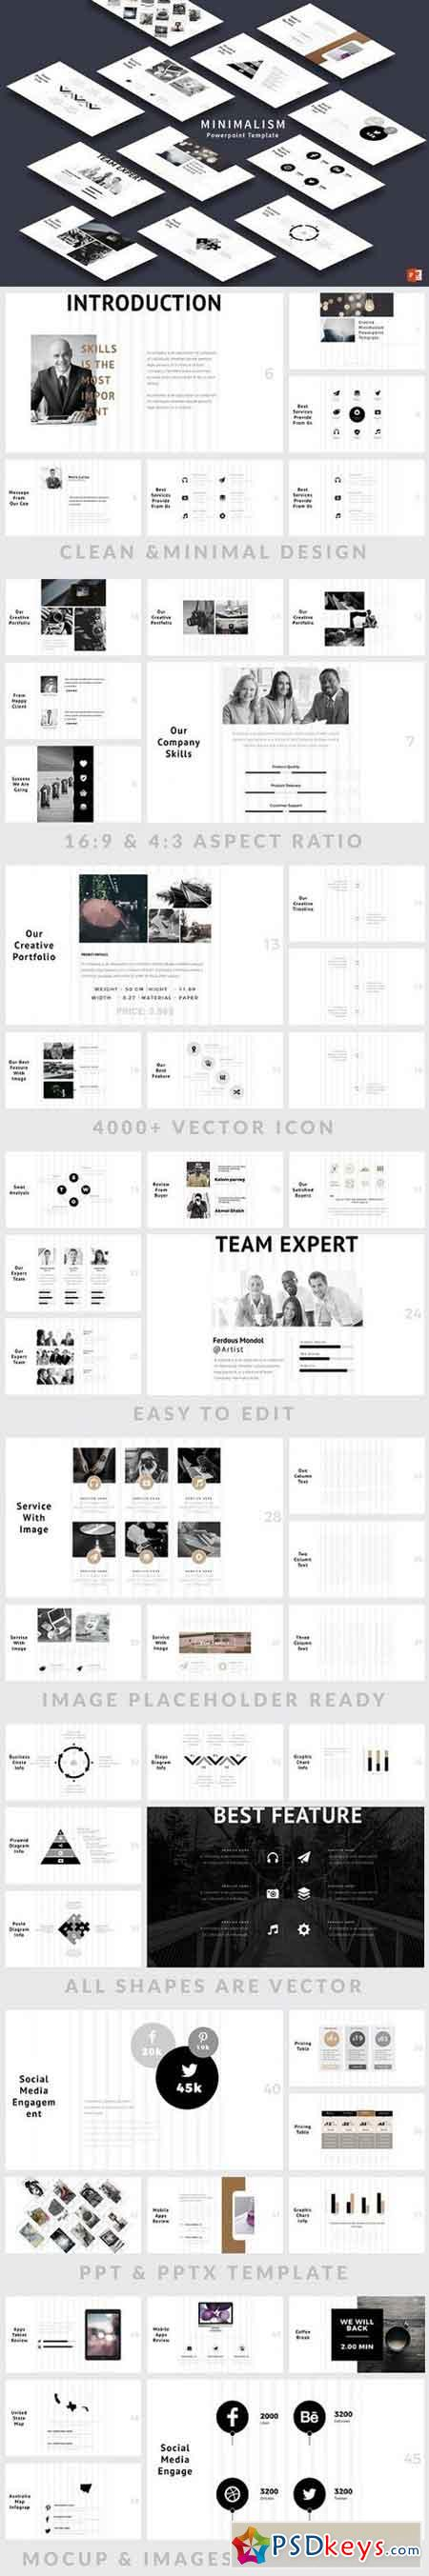 Minimalism PowerPoint Template 1246271